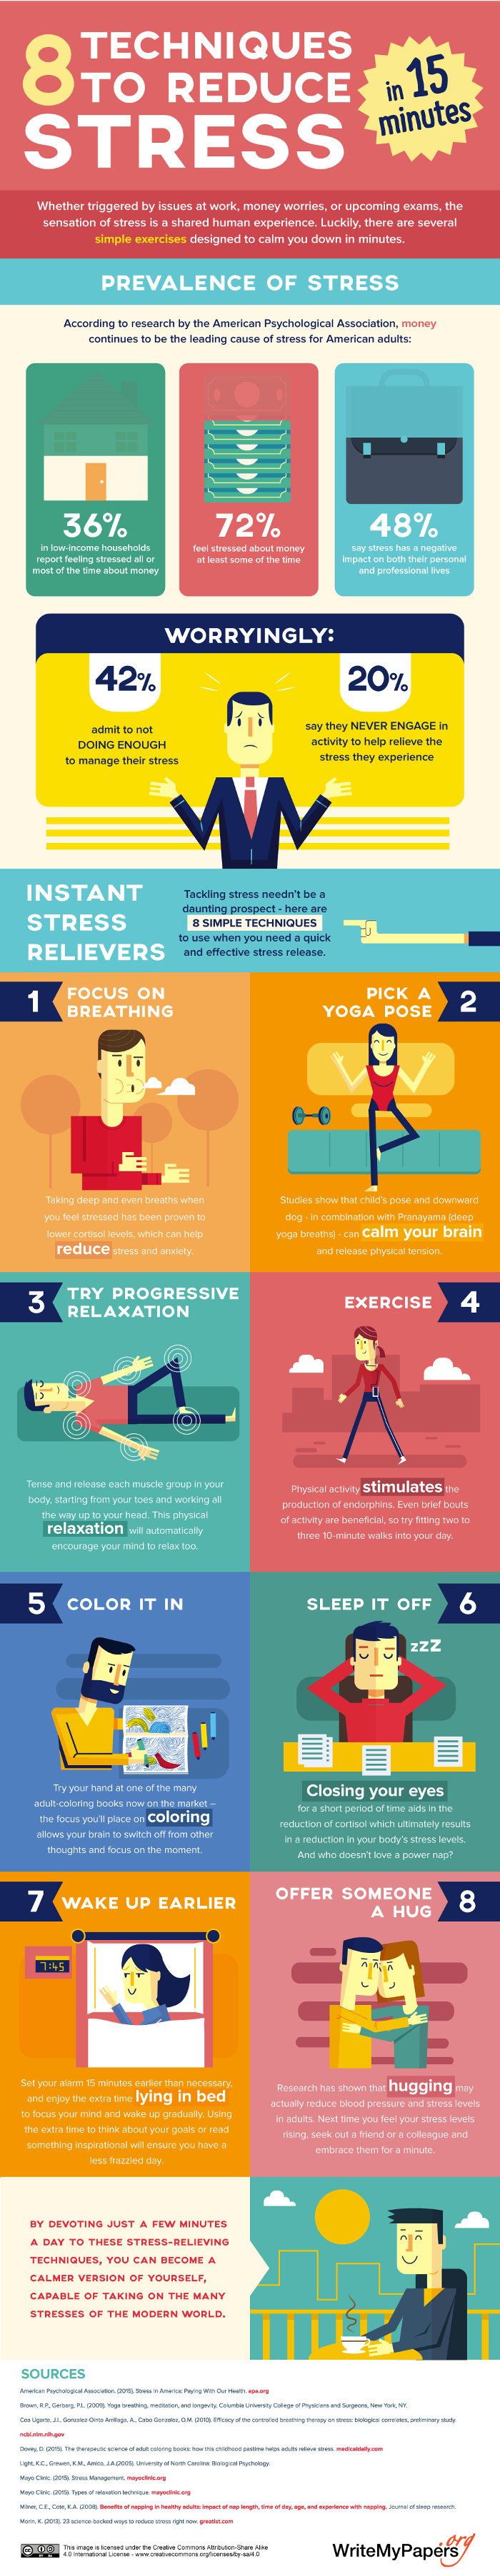 Poster depicting 8 ways to reduce stress with images of people depicting the techniques